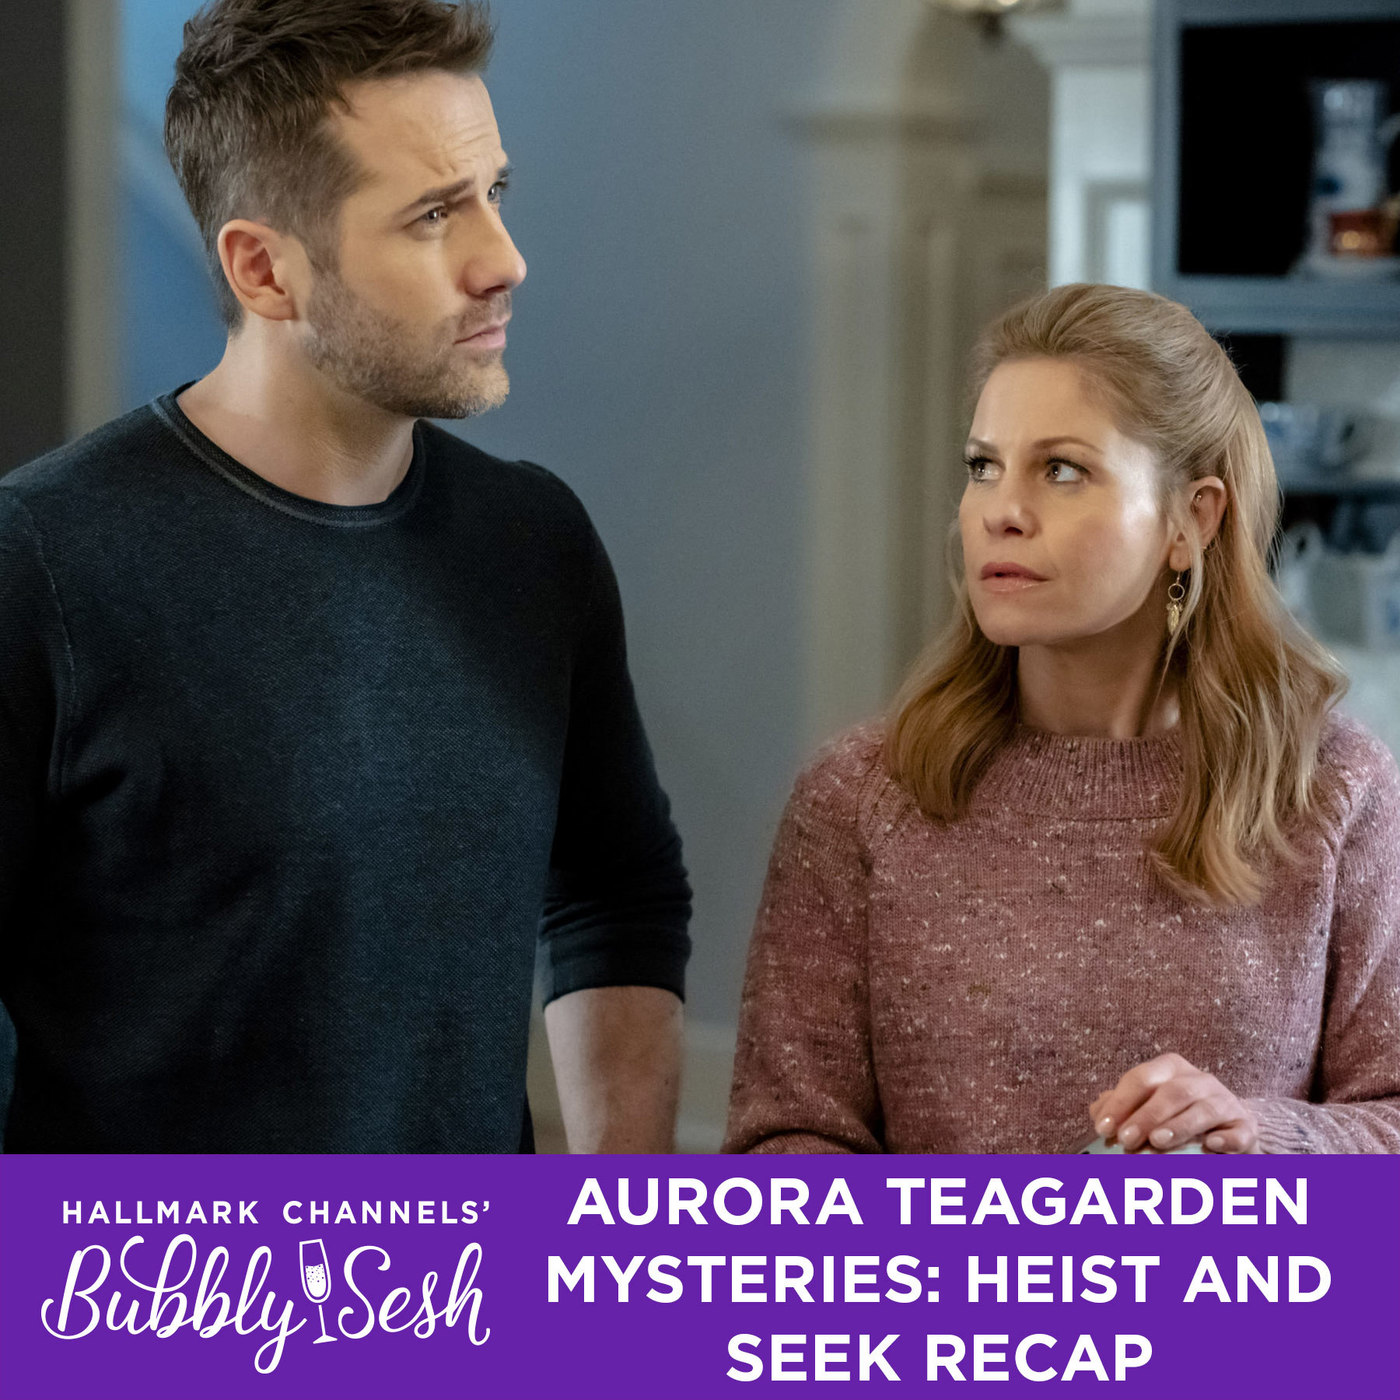 Aurora Teagarden Mysteries: Heist and Seek Recap